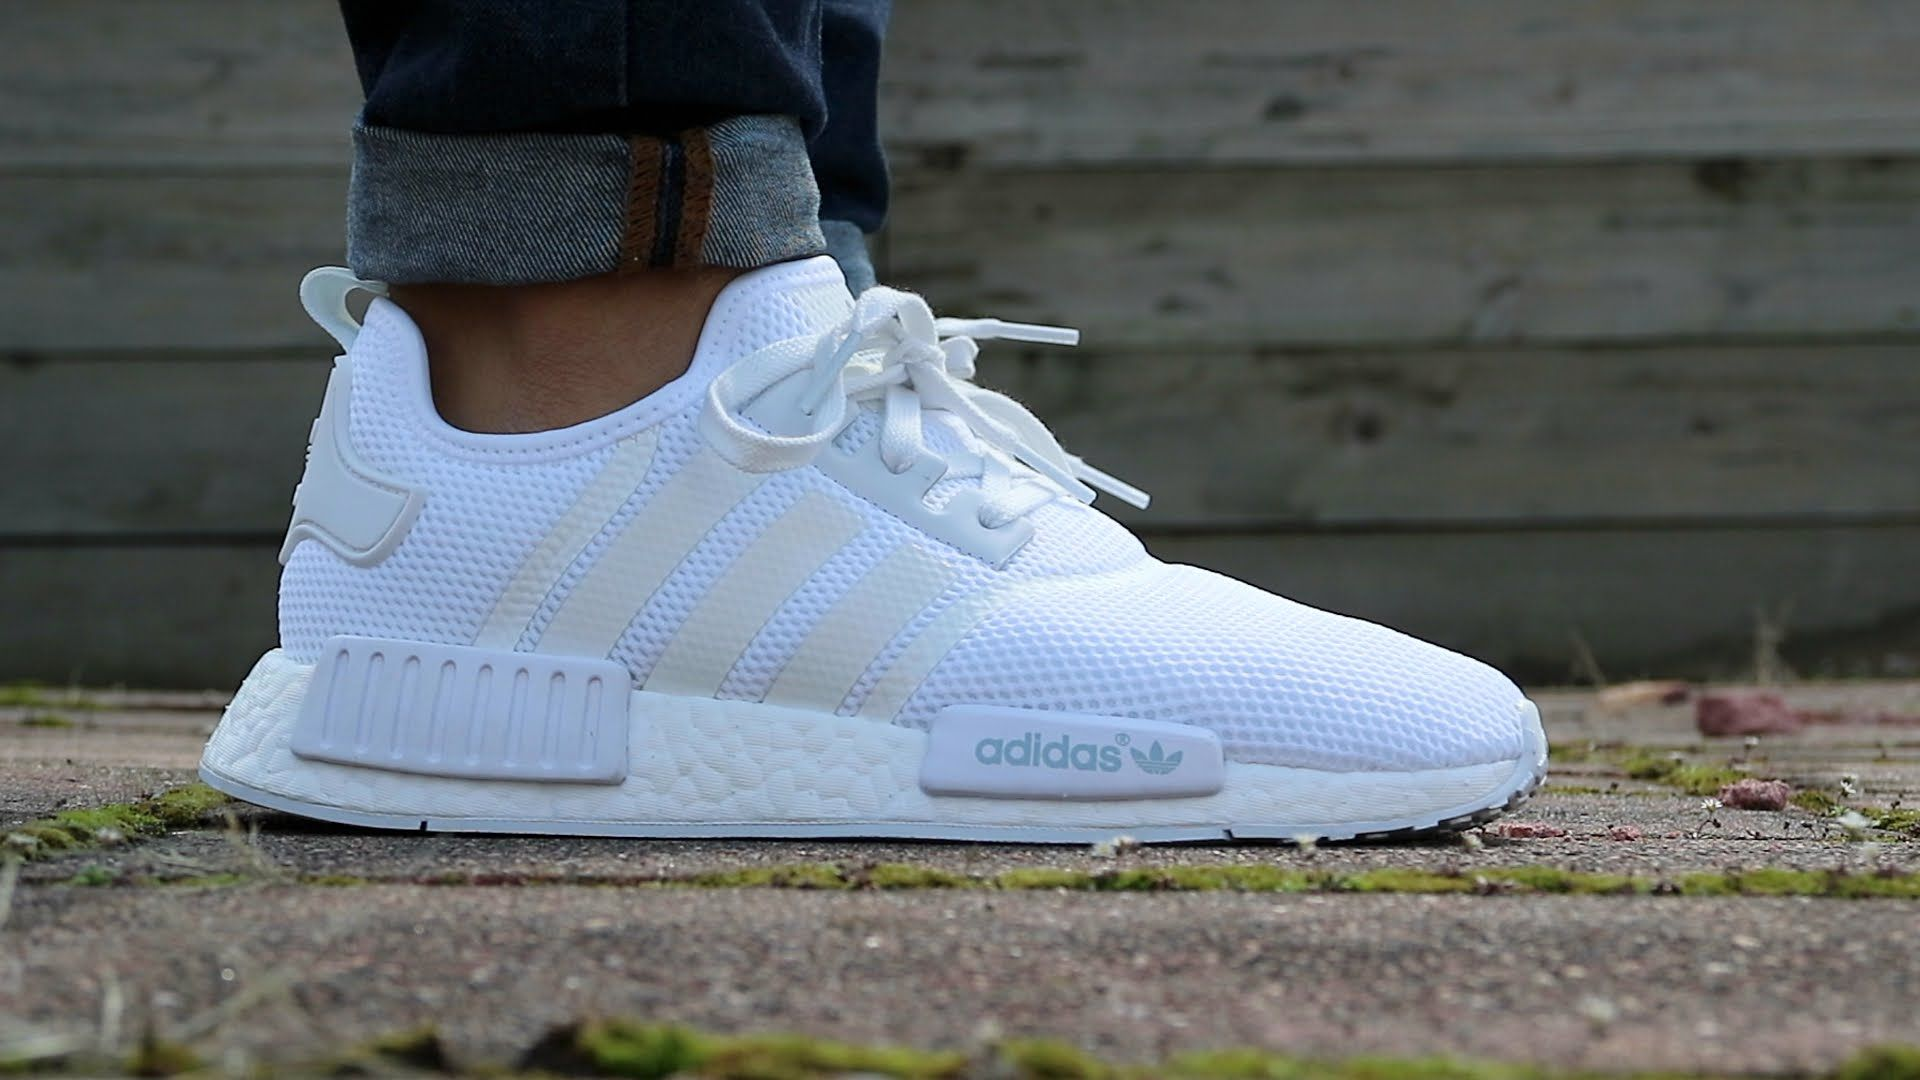 Adidas NMD monochrome Review + On feet YouTube | Adidas